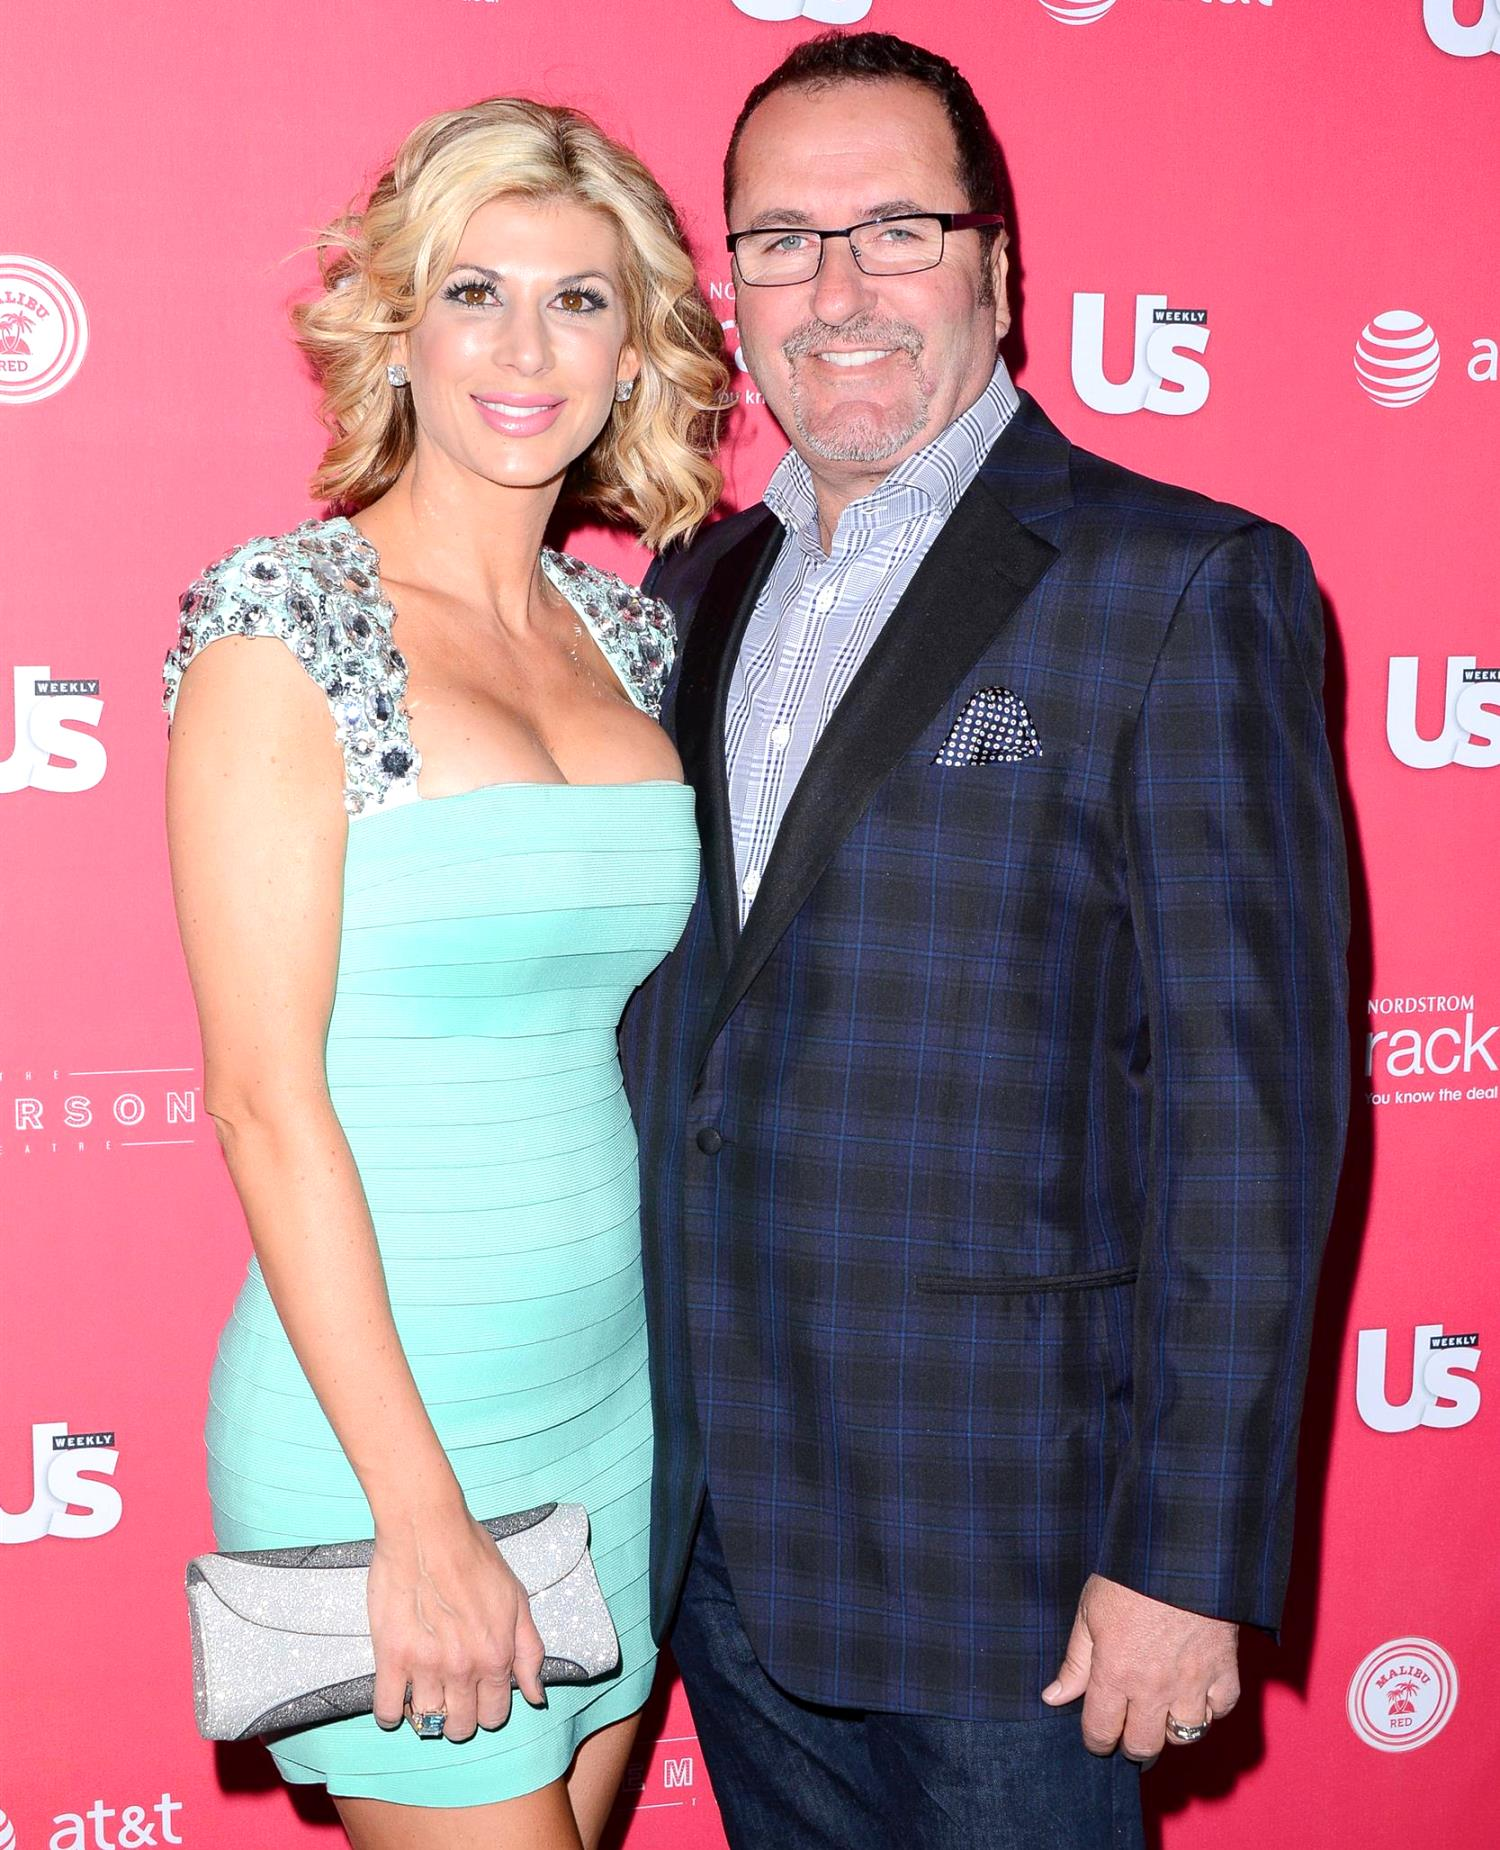 RHOC Alexis Bellino and Jim Bellino Divorce